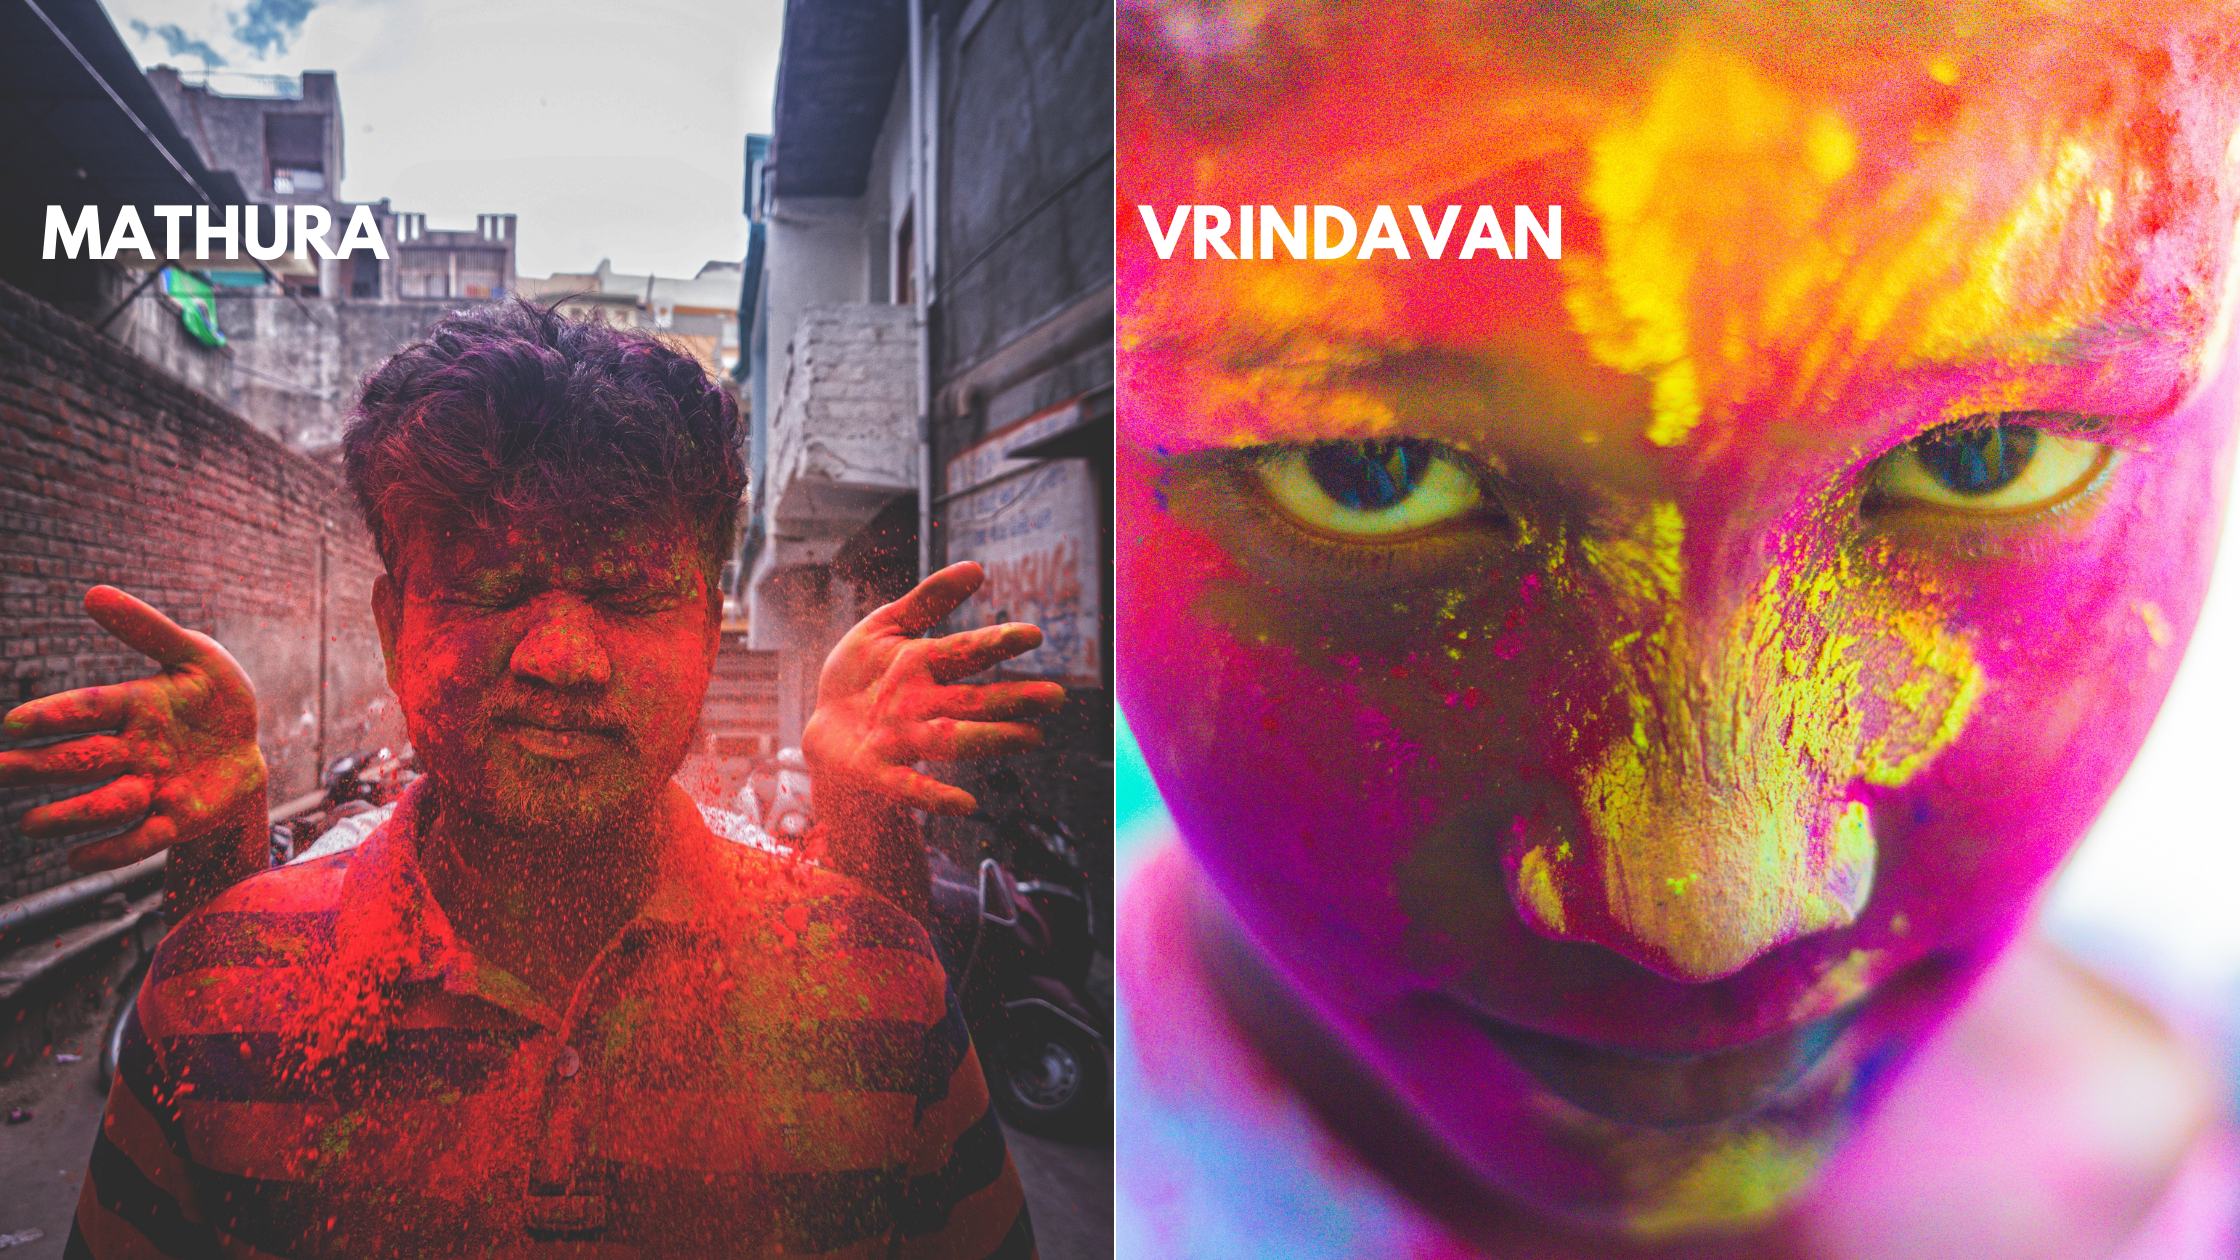 Here's everything you can do in Vrindavan and Mathura in just 24 hours